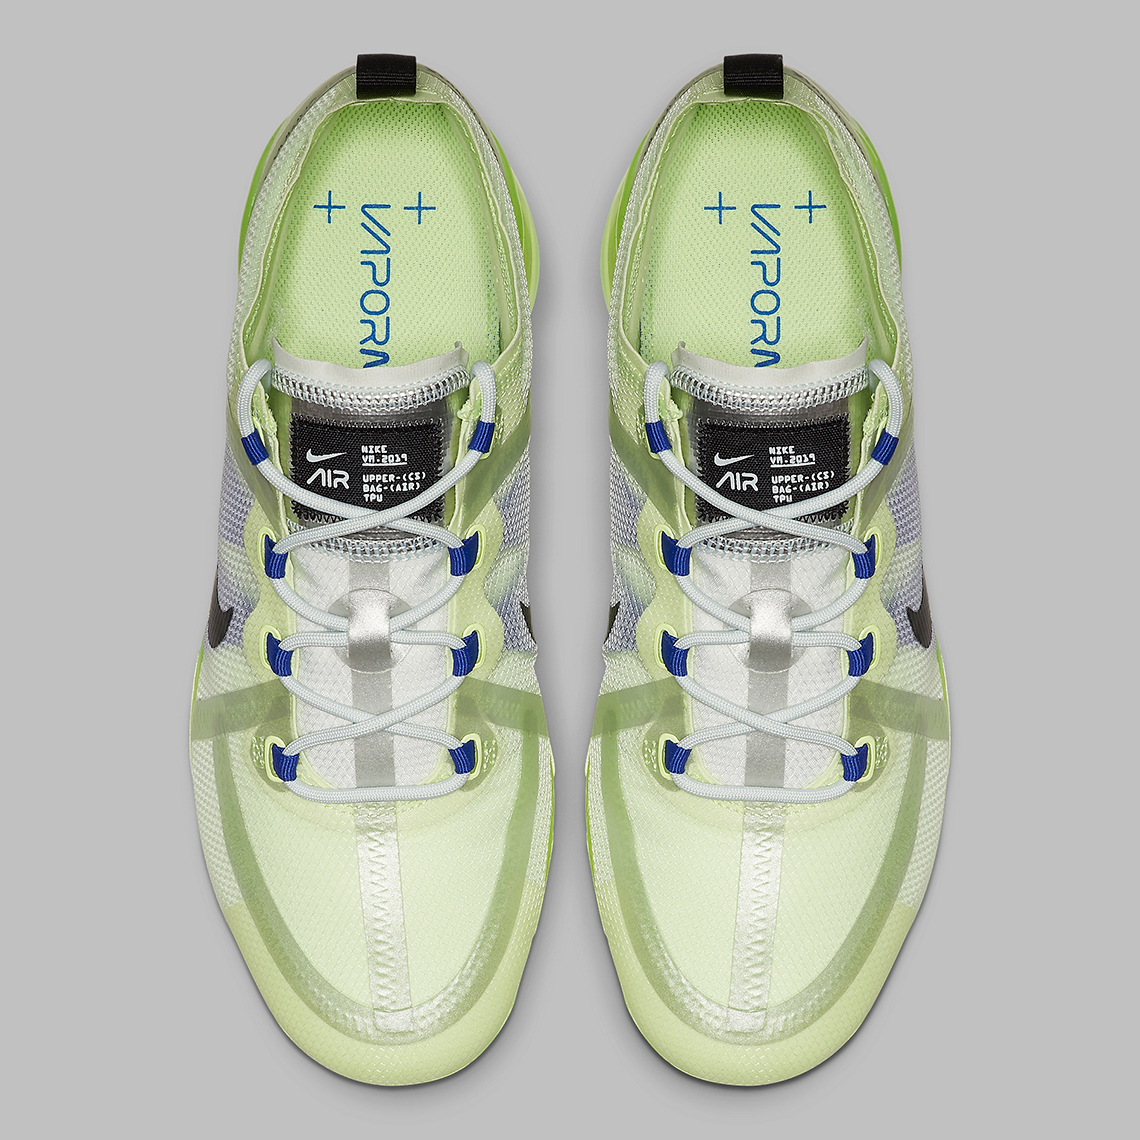 reputable site e7768 37db7 Nike Vapormax 2019 Barely Volt AR6631-702 Release Info   SneakerNews.com